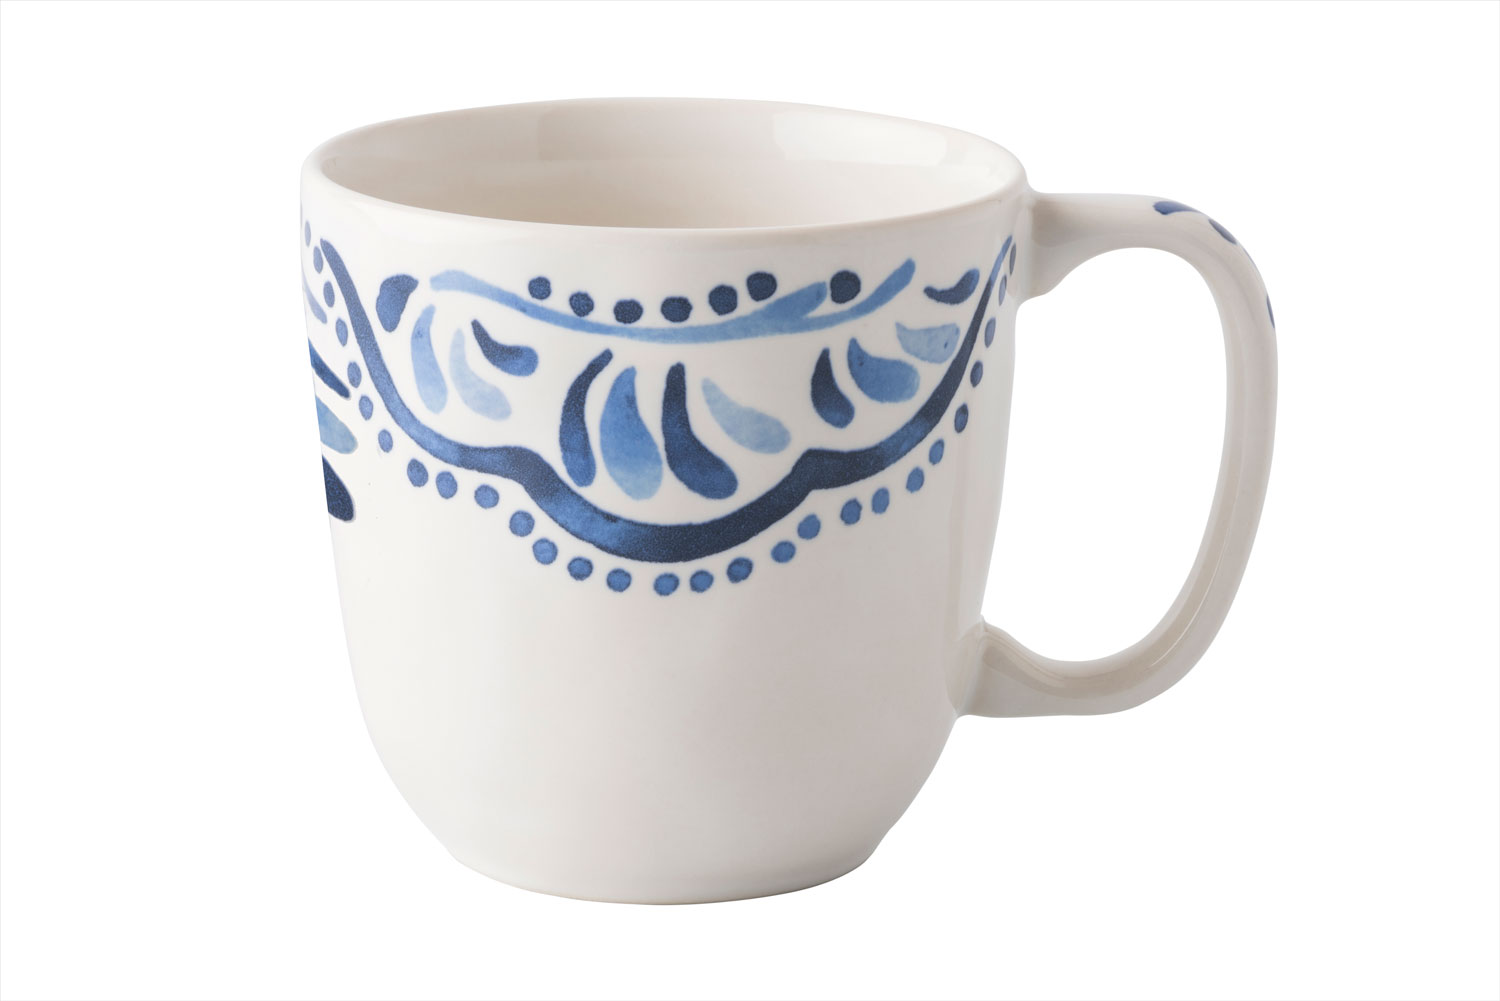 wedding registry product ideas juliska iberian journey wanderlust tea cup gearys